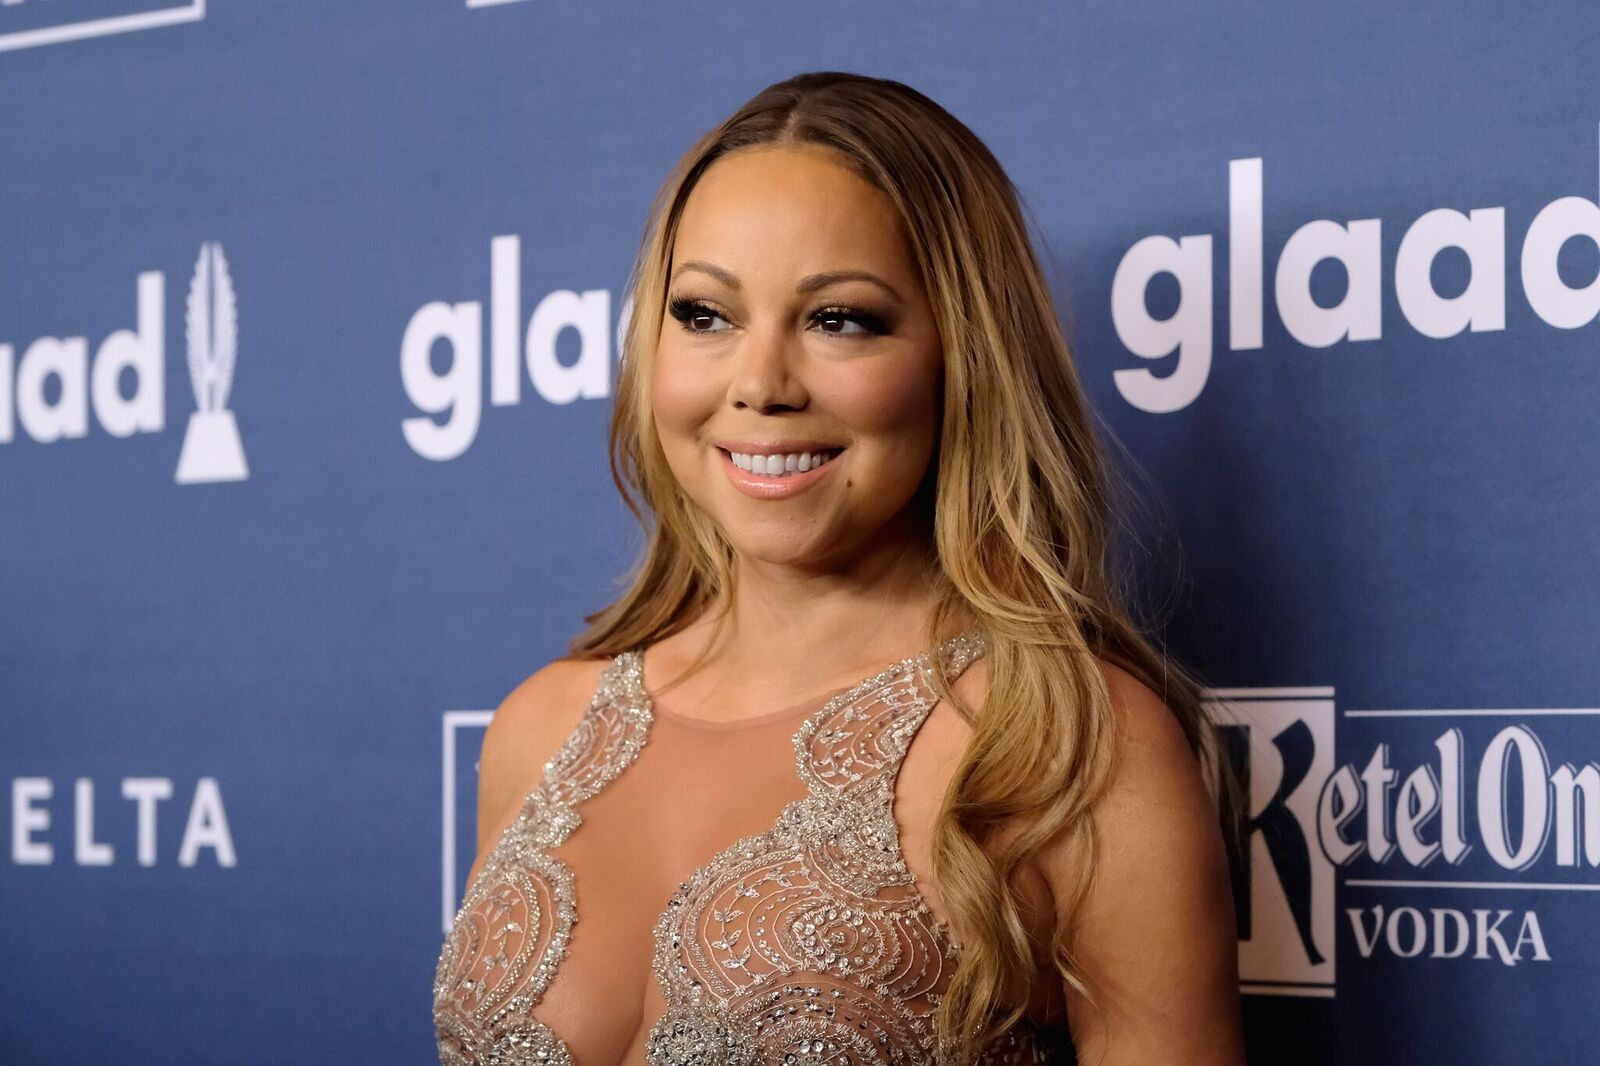 Mariah Carey attends at The 27th Annual GLAAD Media Awards with Hilton at Waldorf Astoria Hotel on May 14, 2016 in New York City.  | Photo: Getty Images